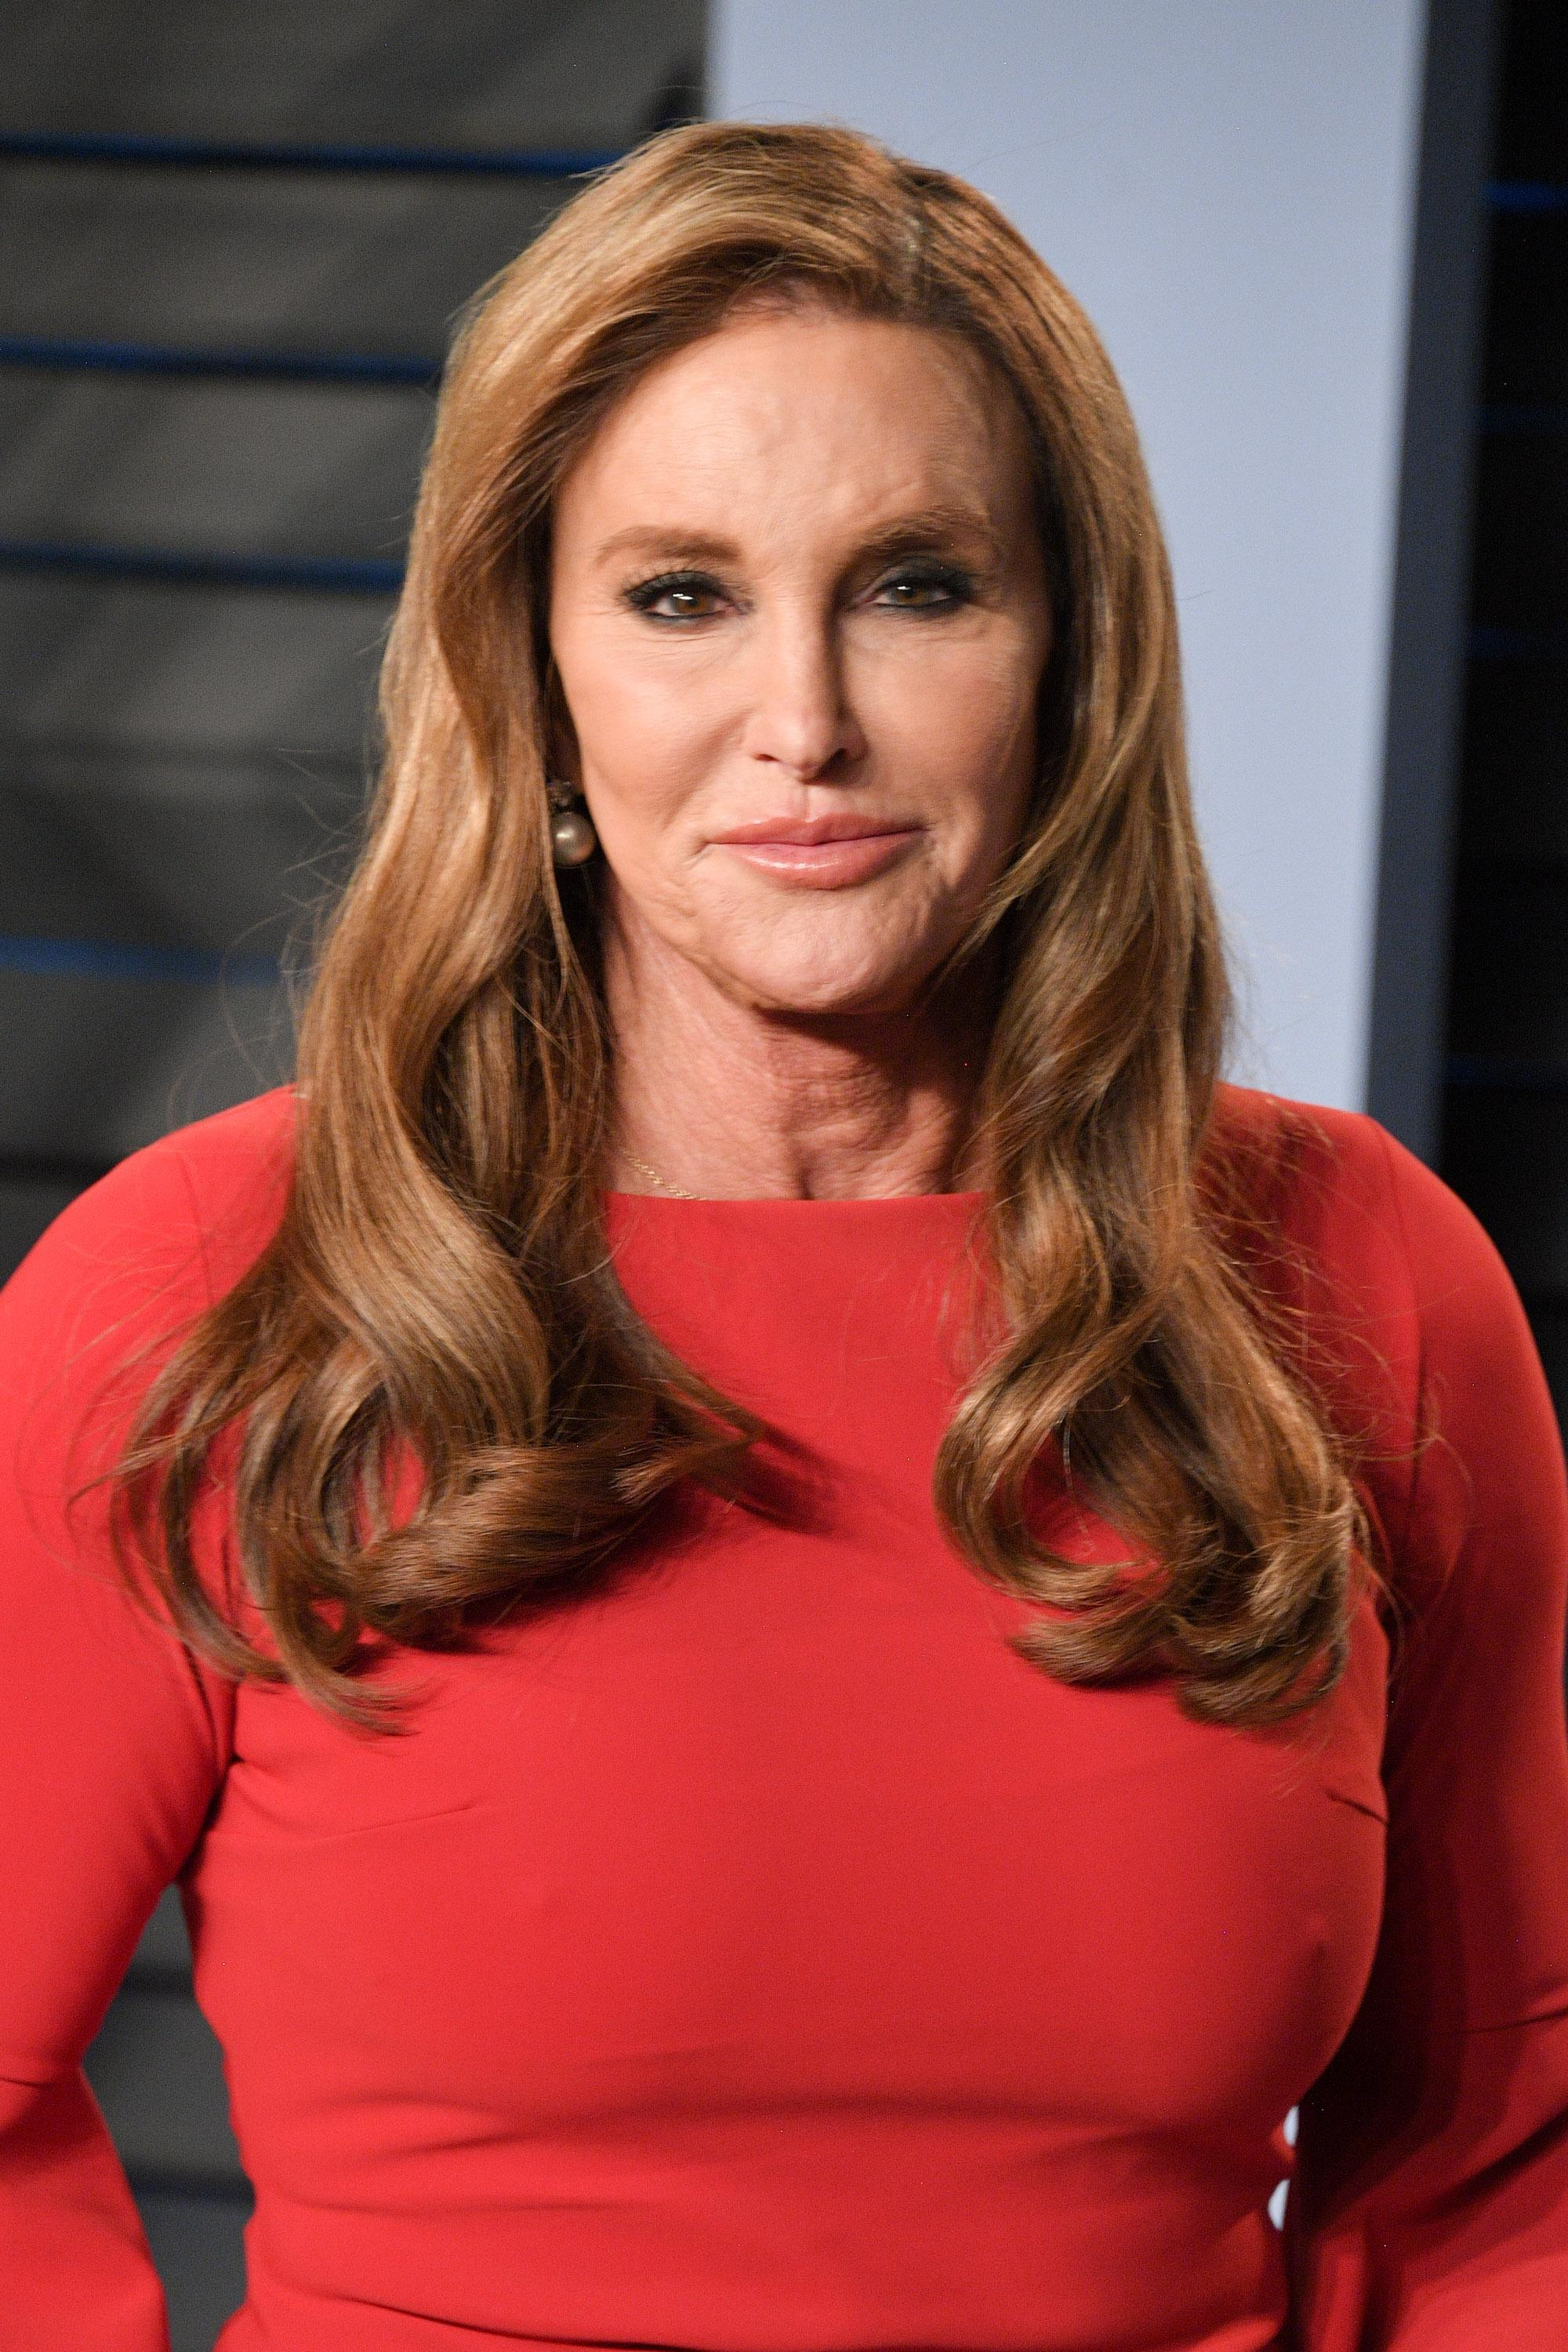 caitlyn jenner - photo #33